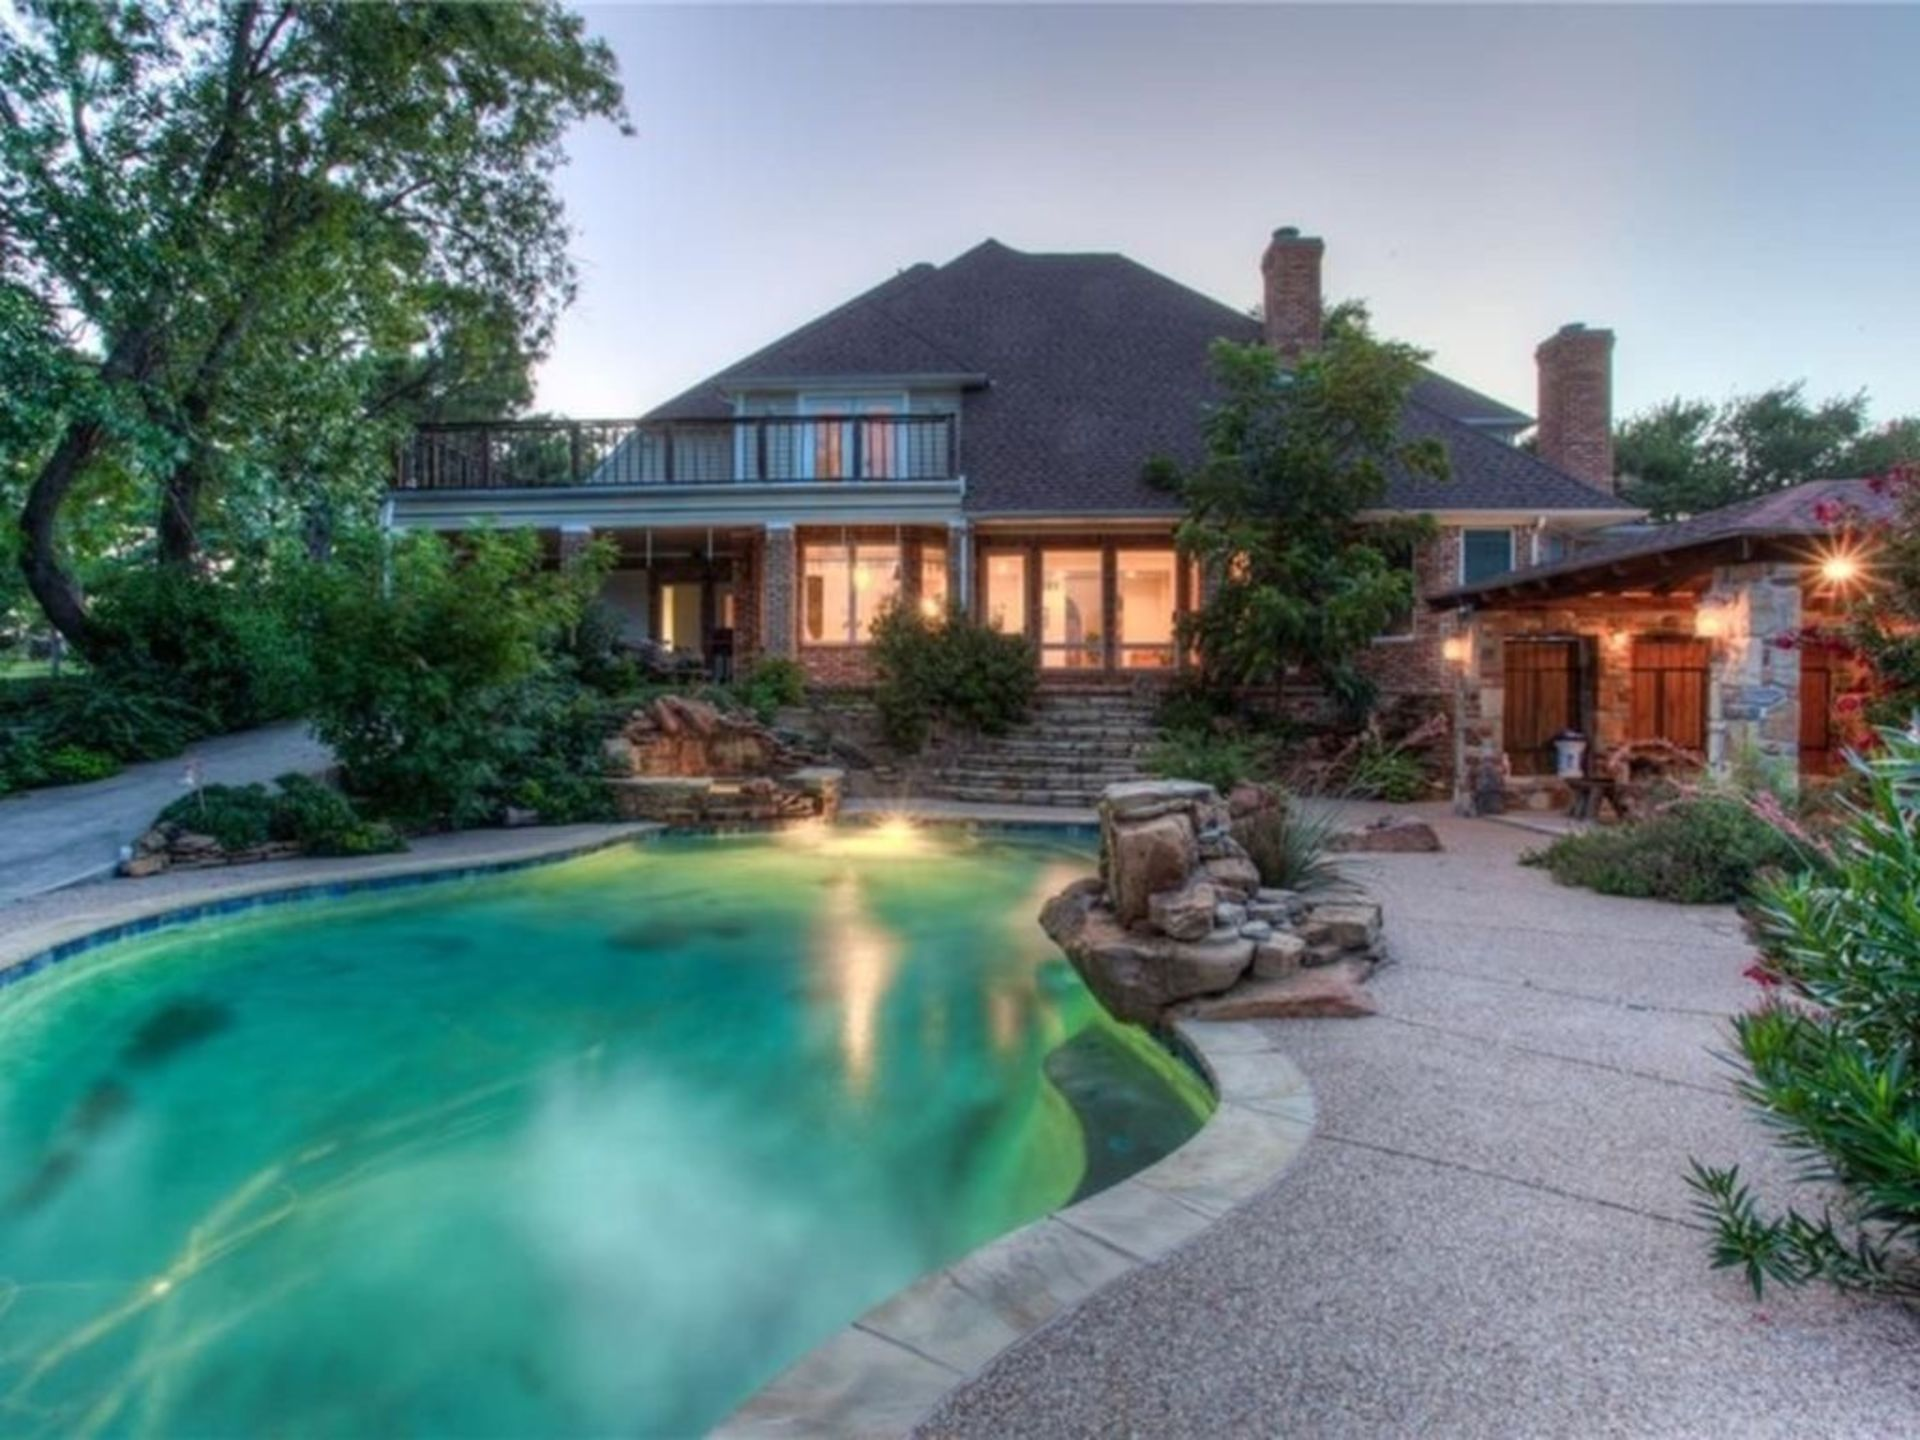 Homes for Sale with Pools!